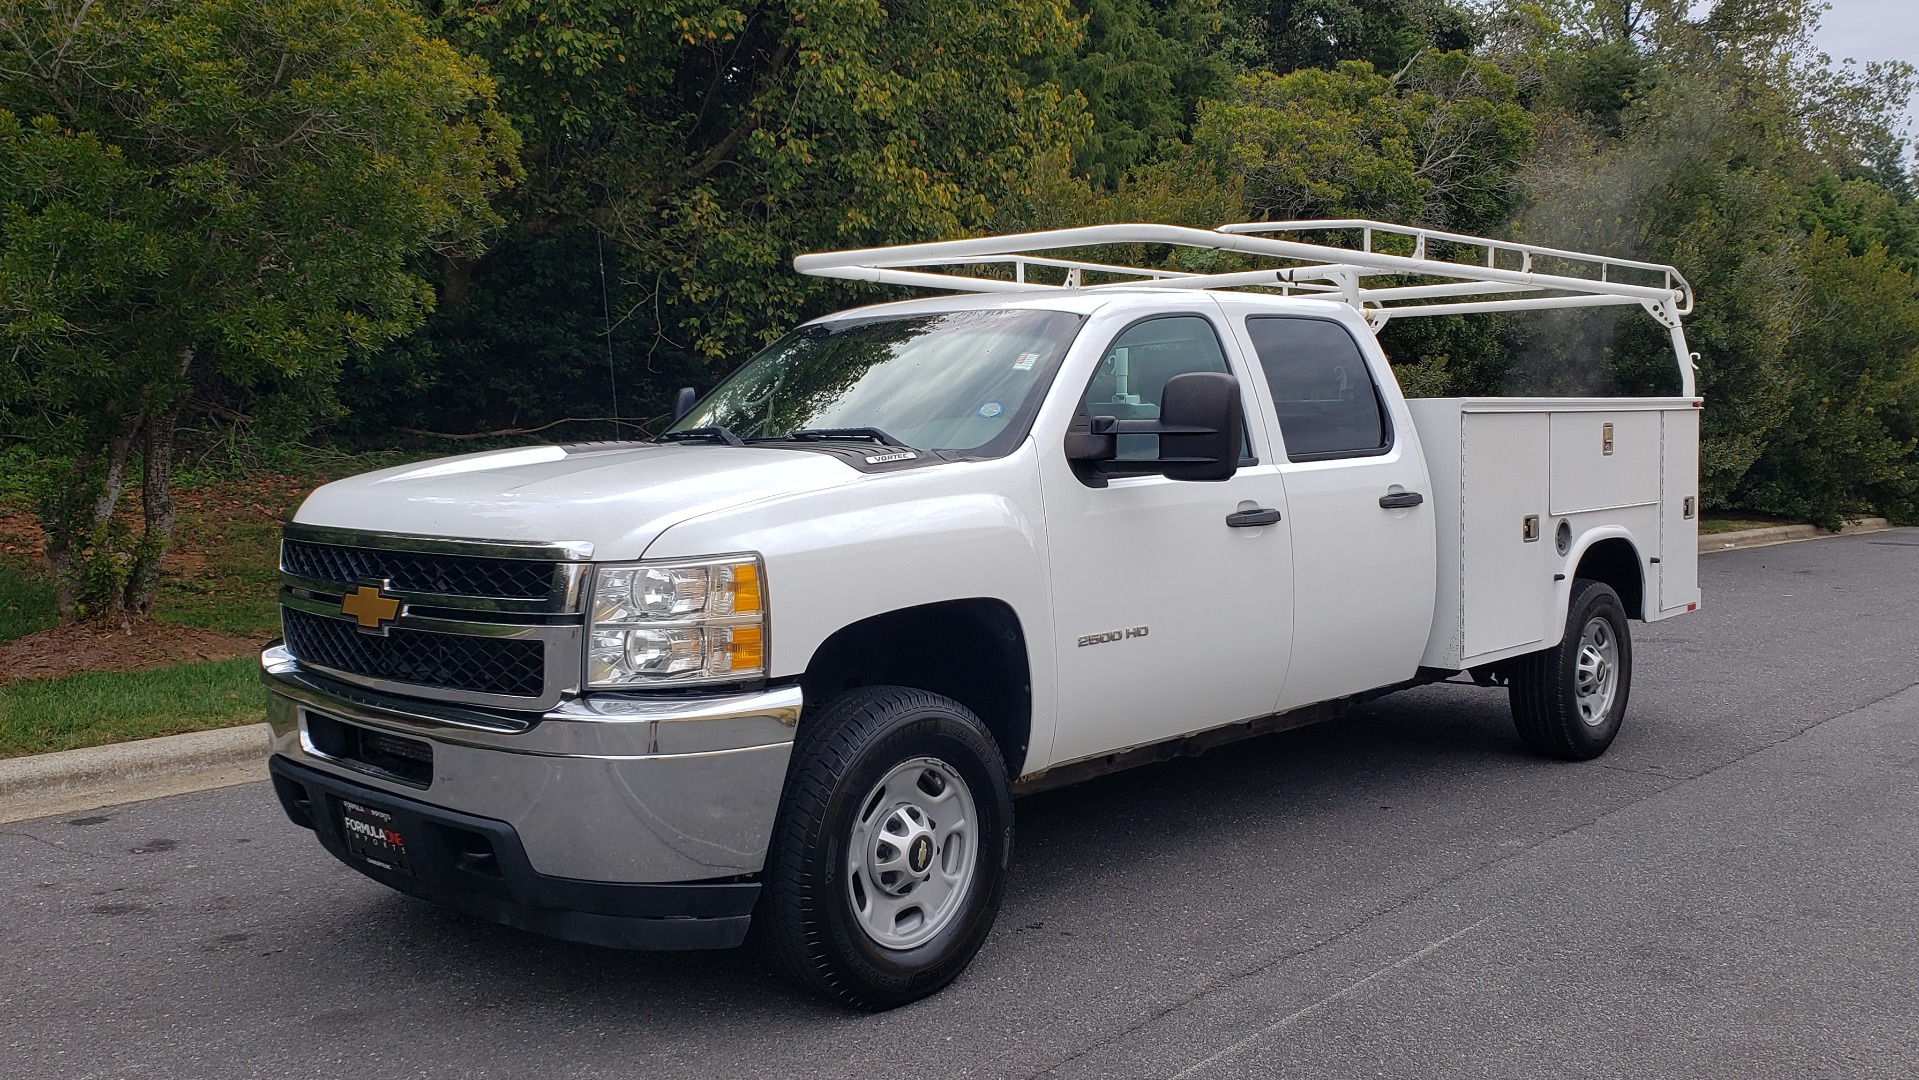 Used 2013 Chevrolet SILVERADO 2500HD WORK TRUCK 4WD / 6.0L V8 / AUTO / TOOL BOX / CLEAN for sale Sold at Formula Imports in Charlotte NC 28227 1